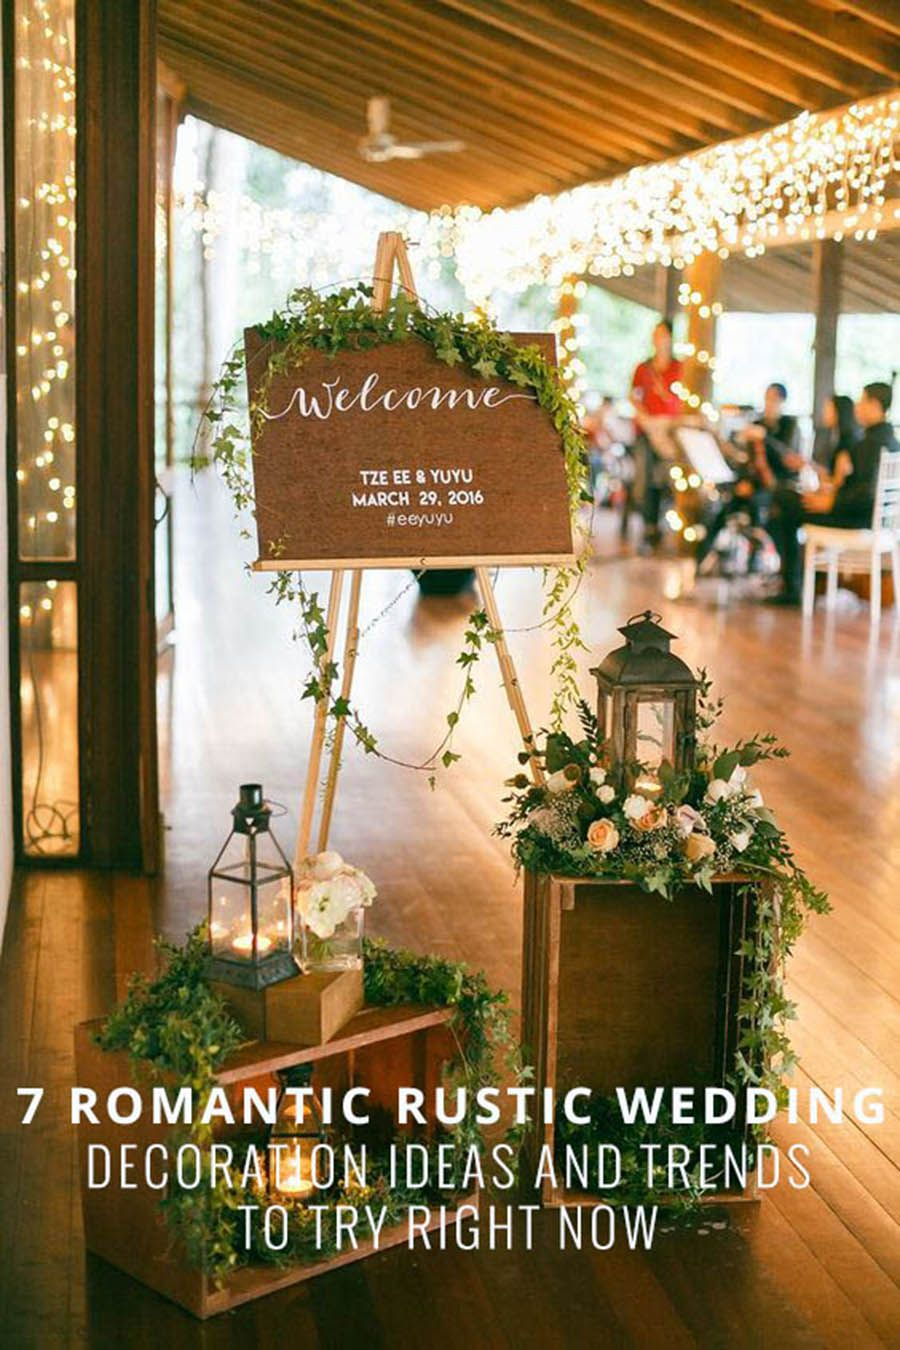 7 romantic rustic wedding decoration ideas and trends to try